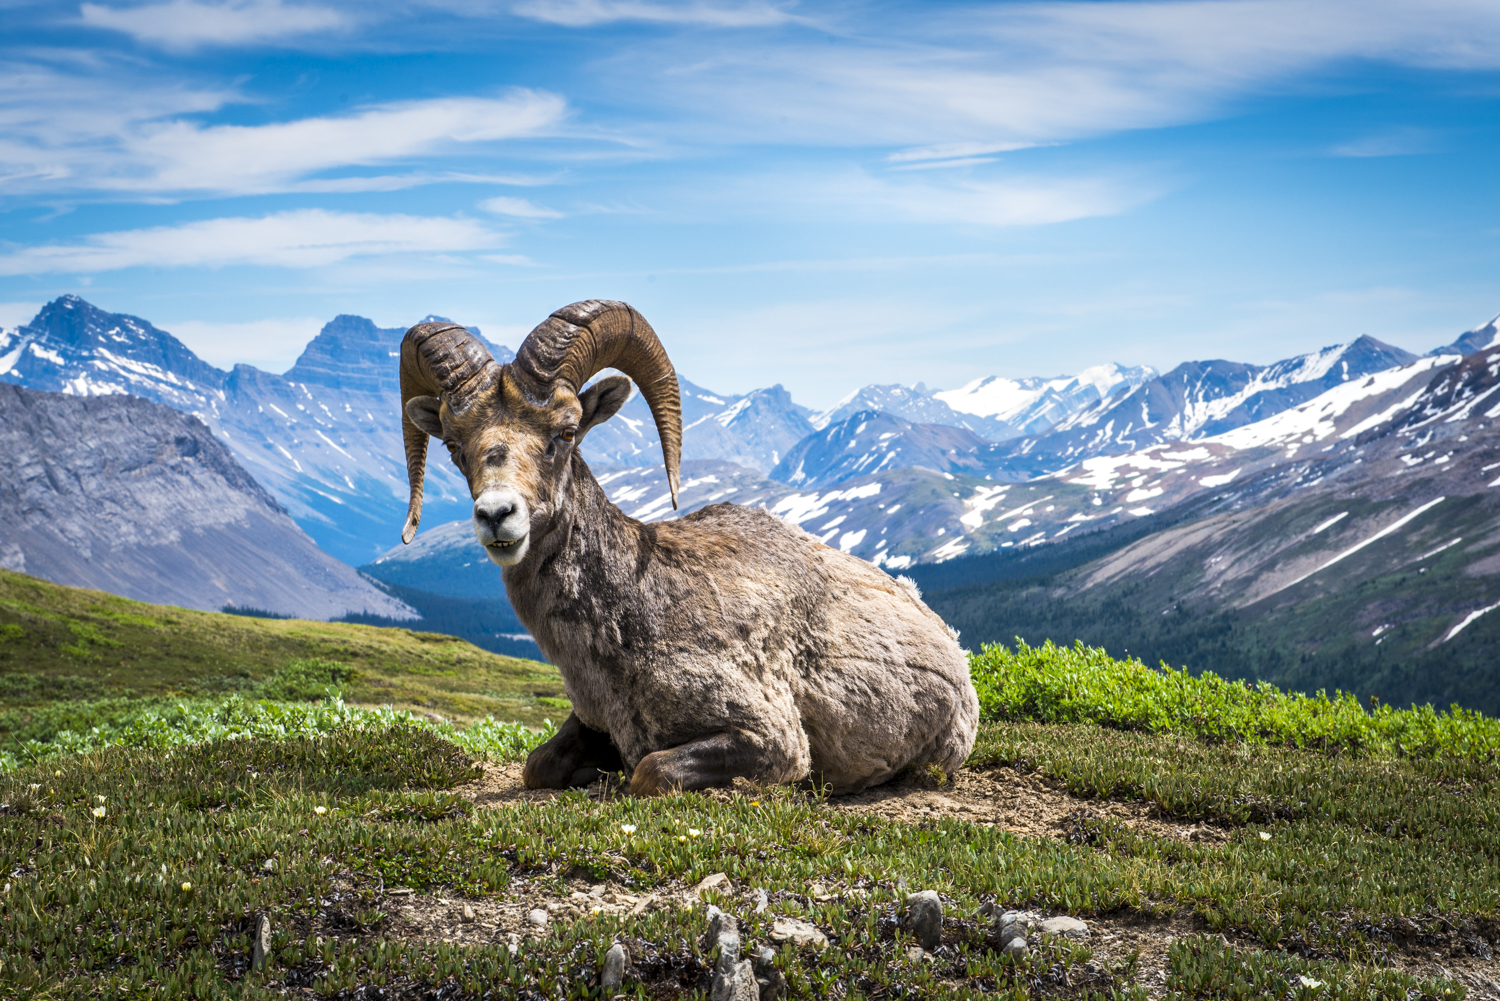 A mountain goat rests in the meadows of Mount Wilcox.